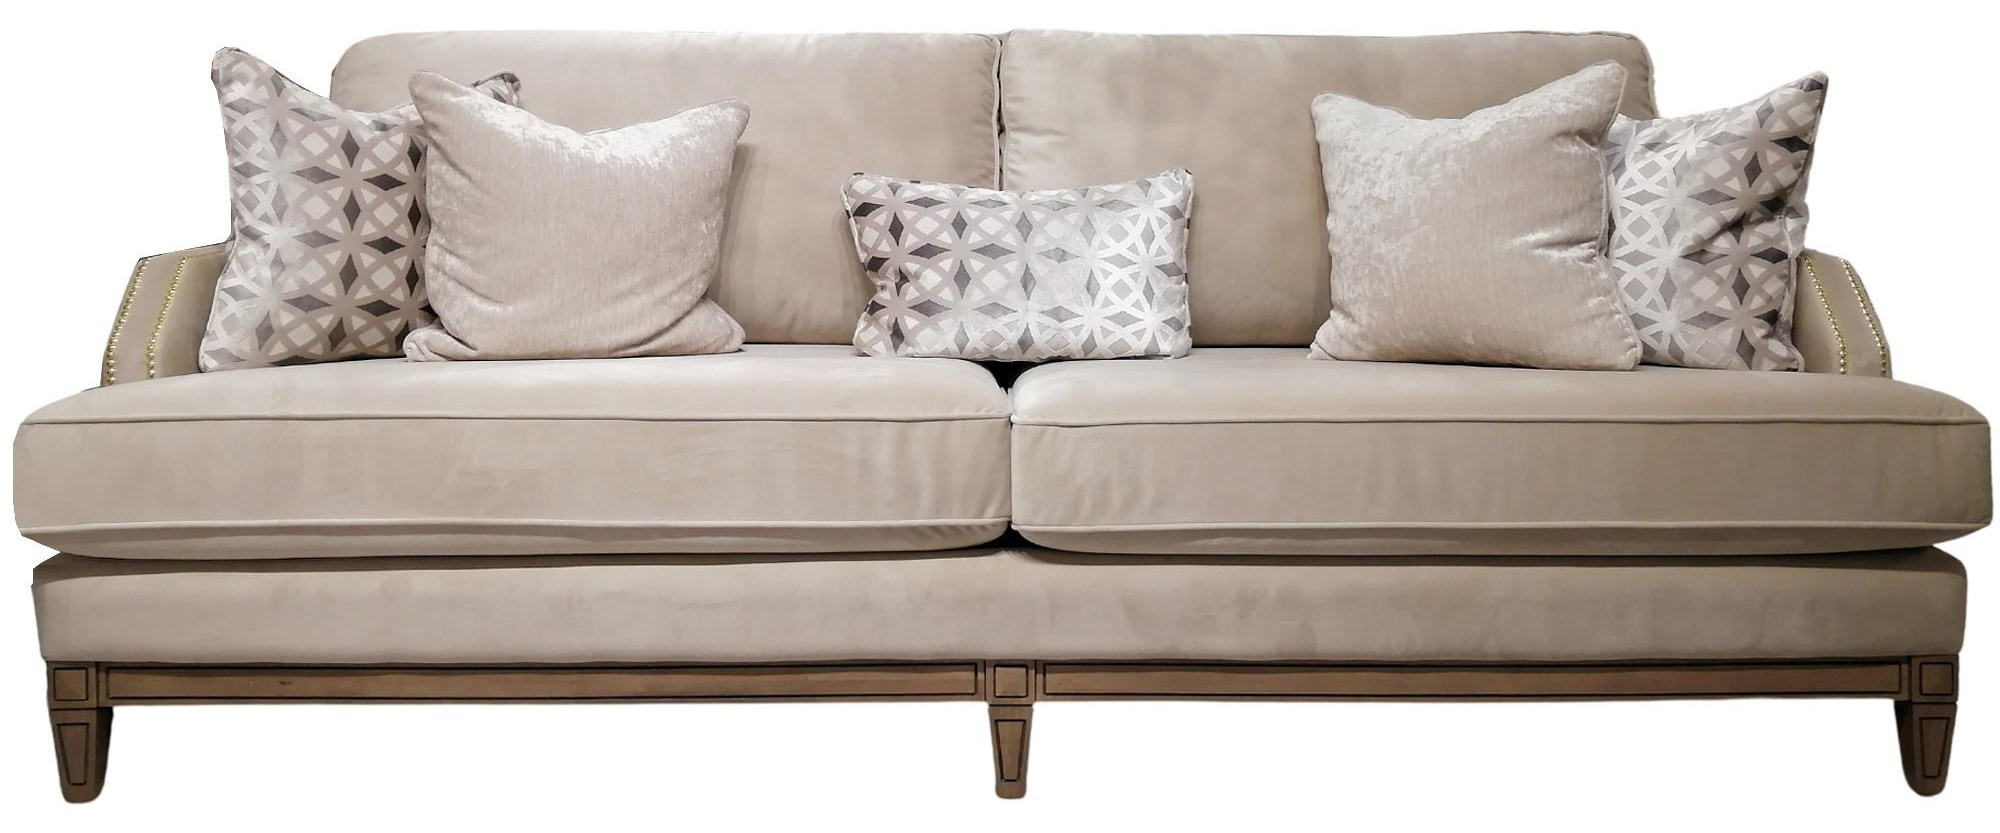 6251 Series 6251S in A:Dynamic Plain Ivory | Sofa, NH: G by Decor-Rest at Upper Room Home Furnishings